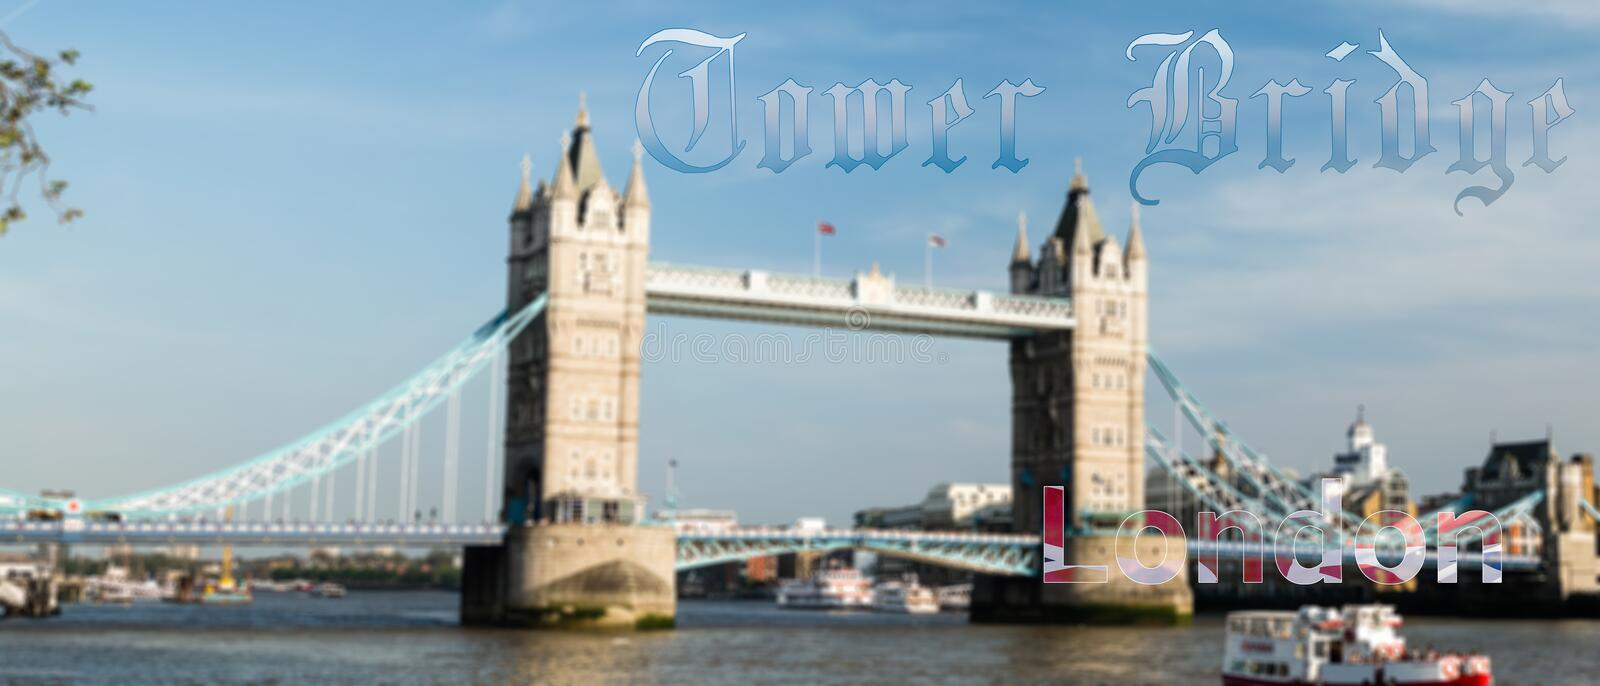 Blured Tower Bridge London with Old Gothic Text royalty free stock photo